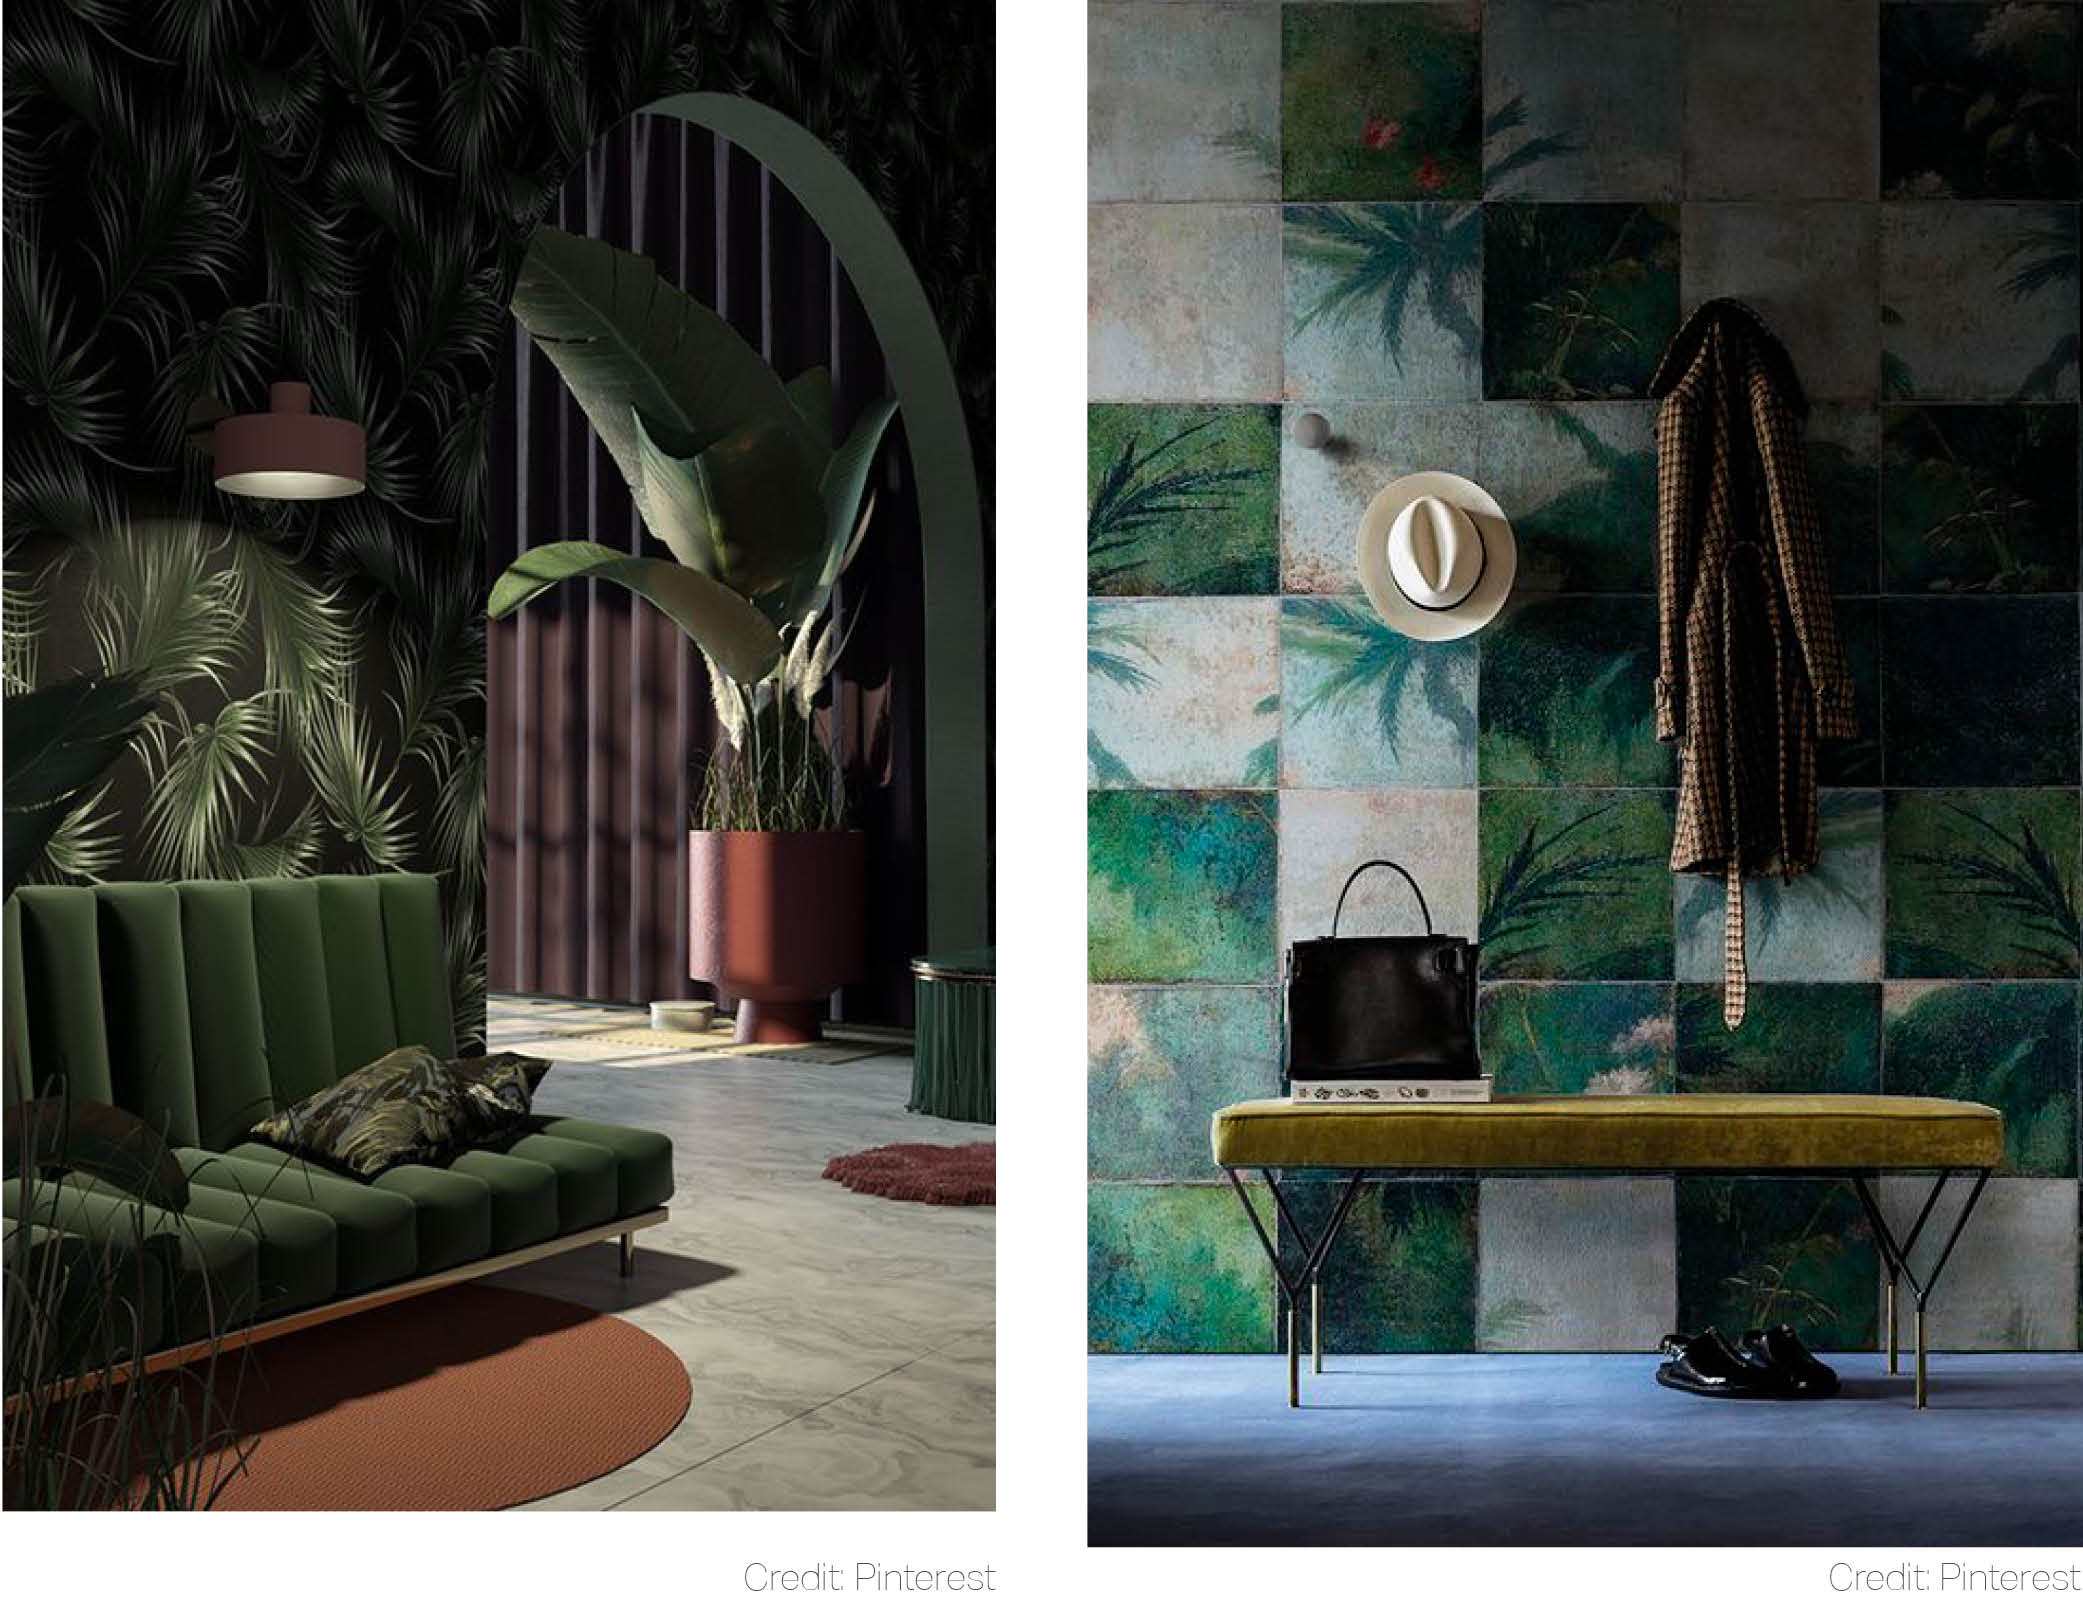 tropical luxe given a moody face dim lights sense of eternity space ochre and orpiment old tints interior design